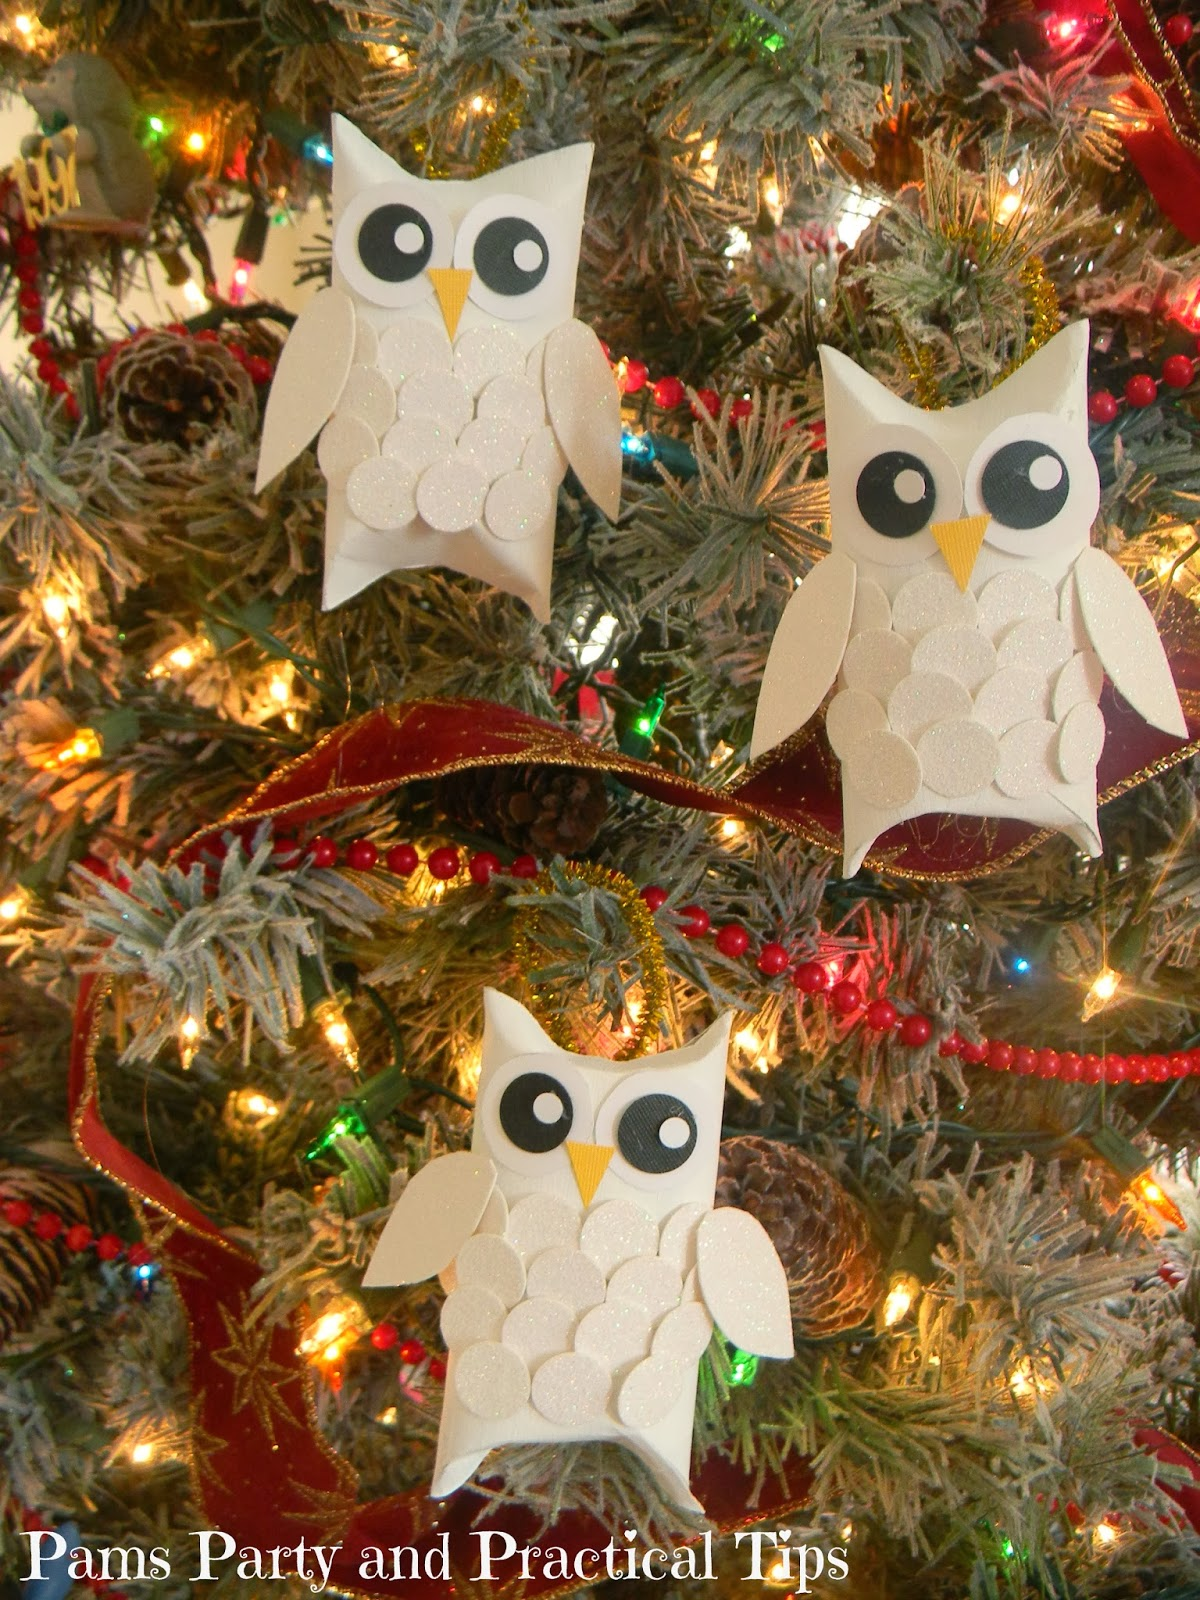 Christmas decorations out of paper towel rolls - Pams Party Practical Tips